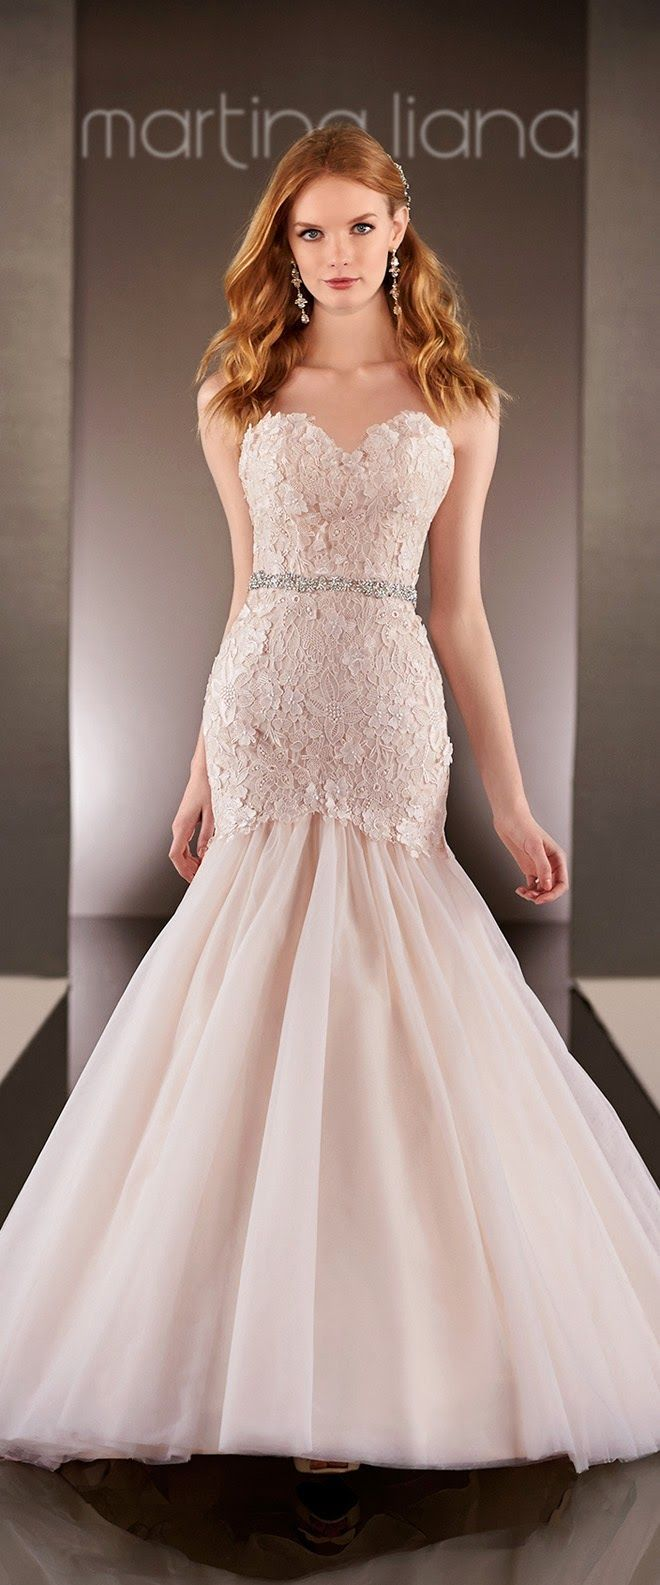 Featured Wedding Dress: Martina Liana Spring 2015 Bridal Collection